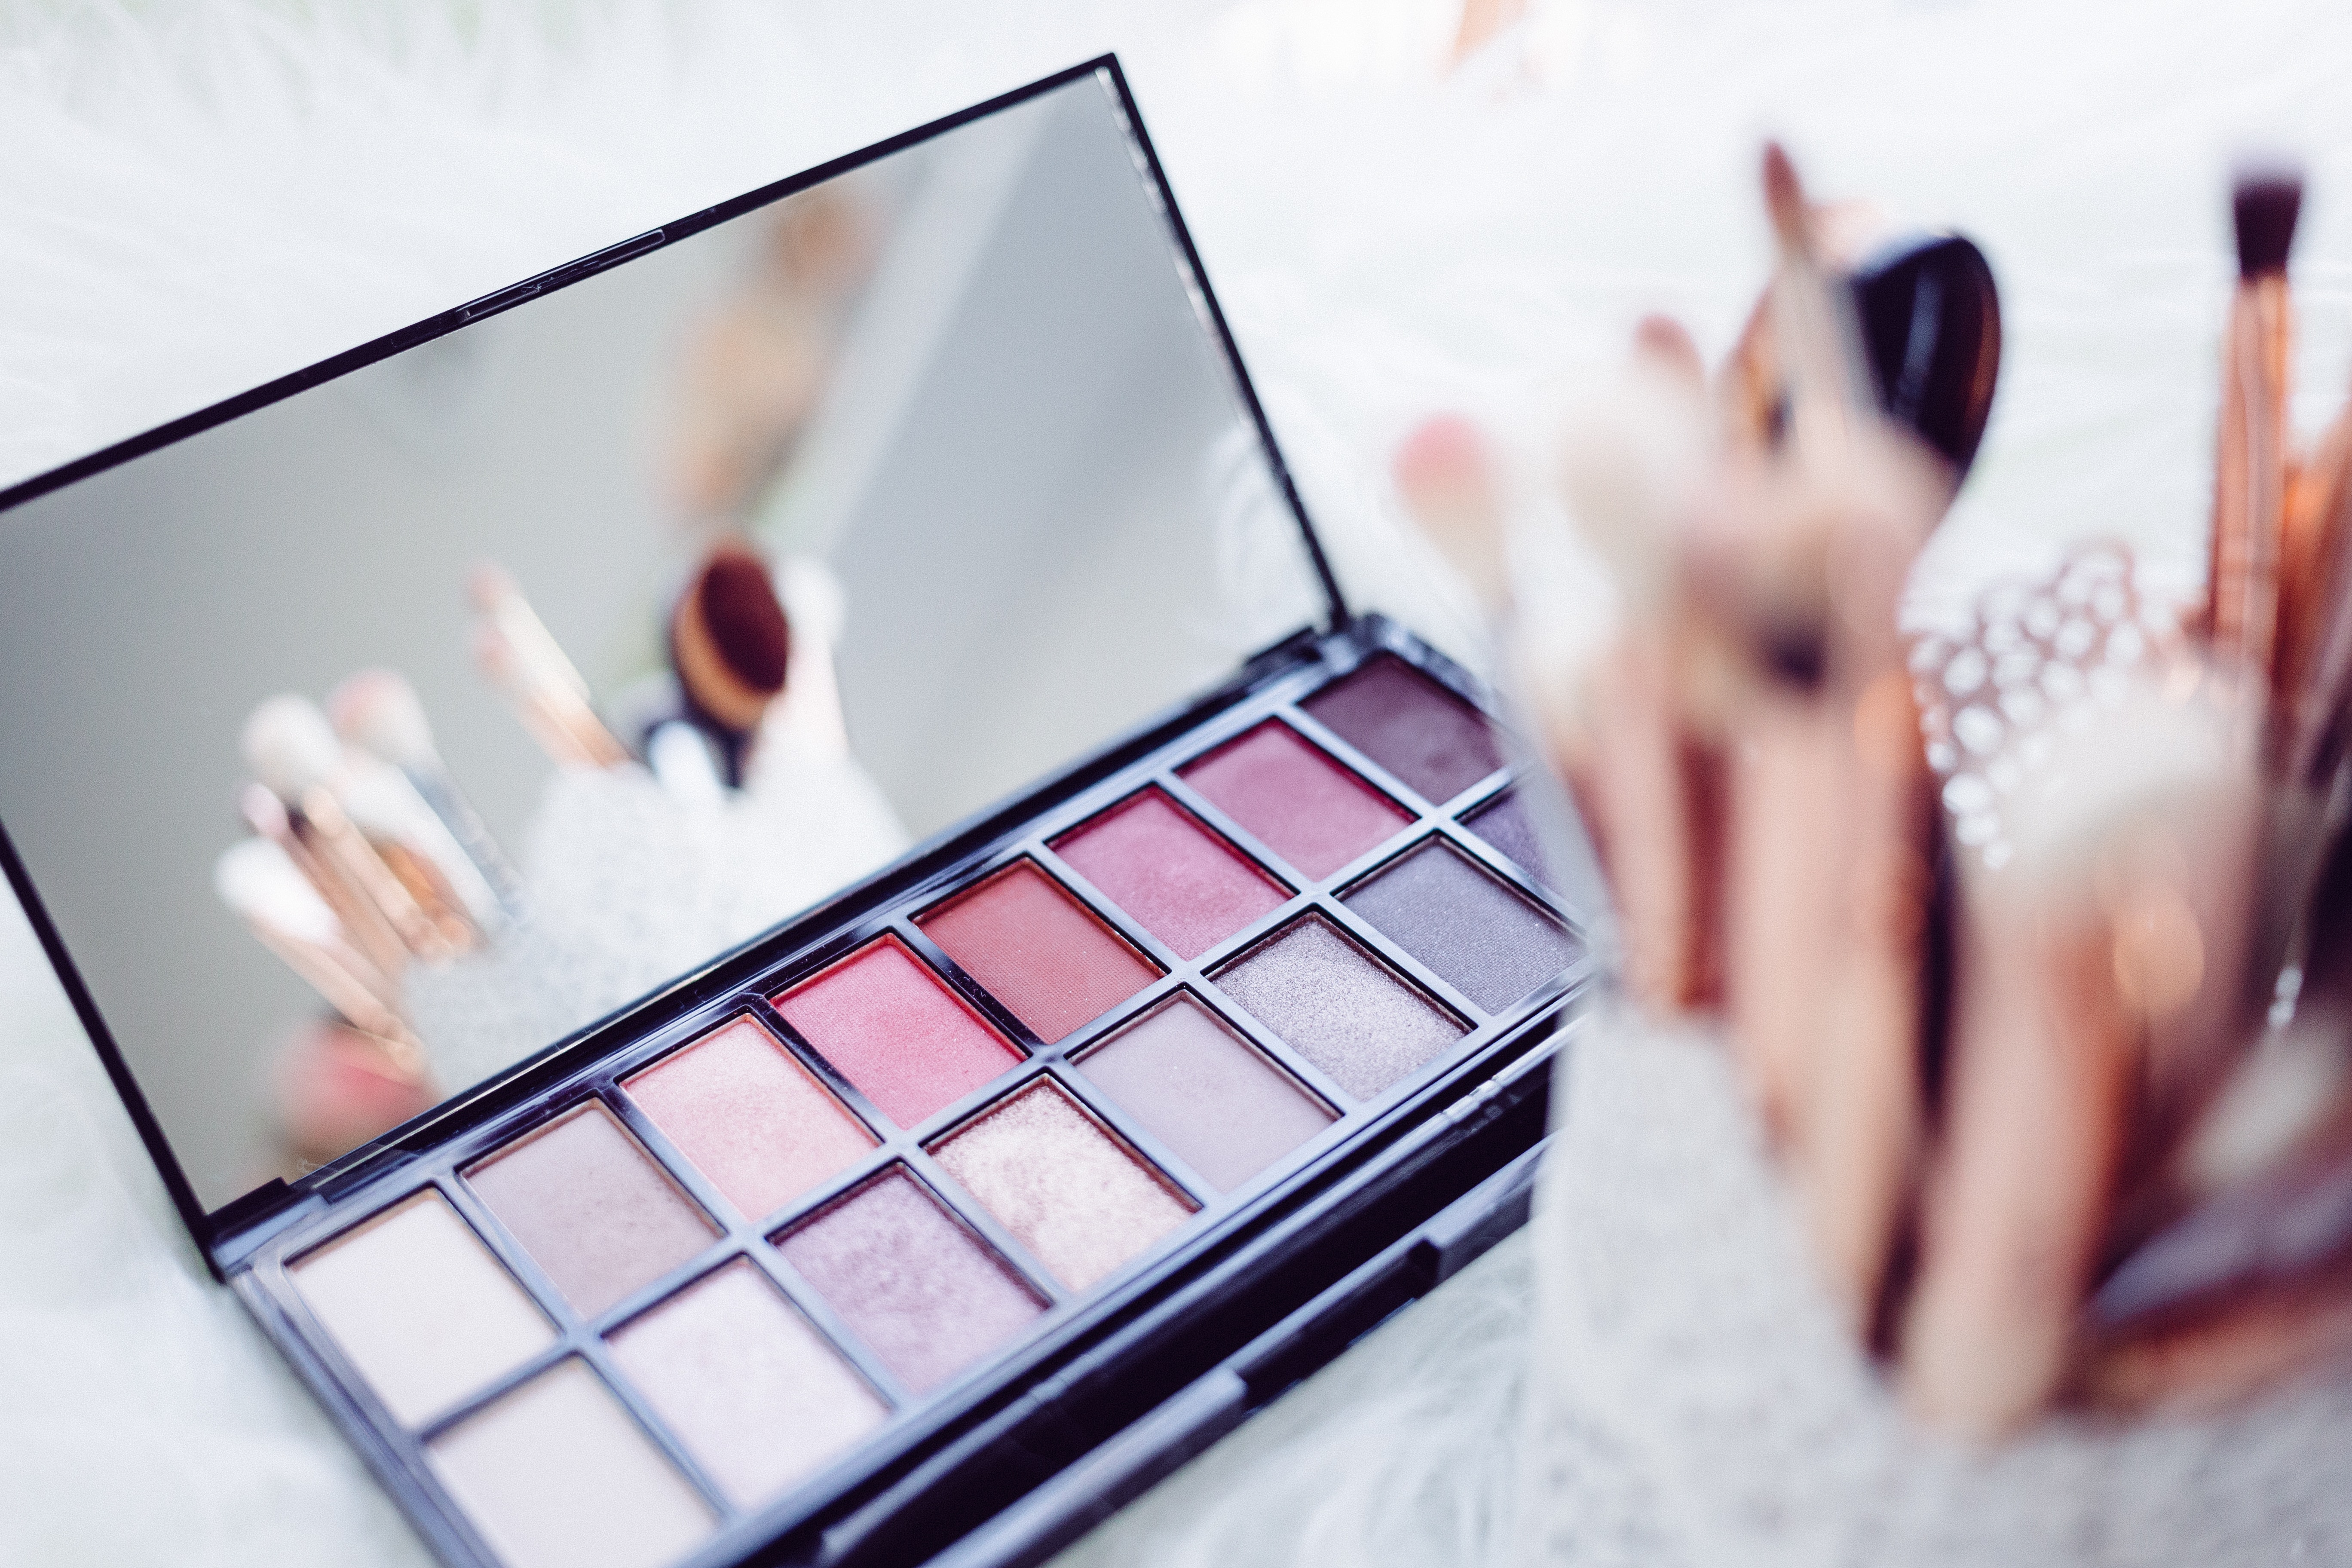 Makeup container that potentially contains PFAS